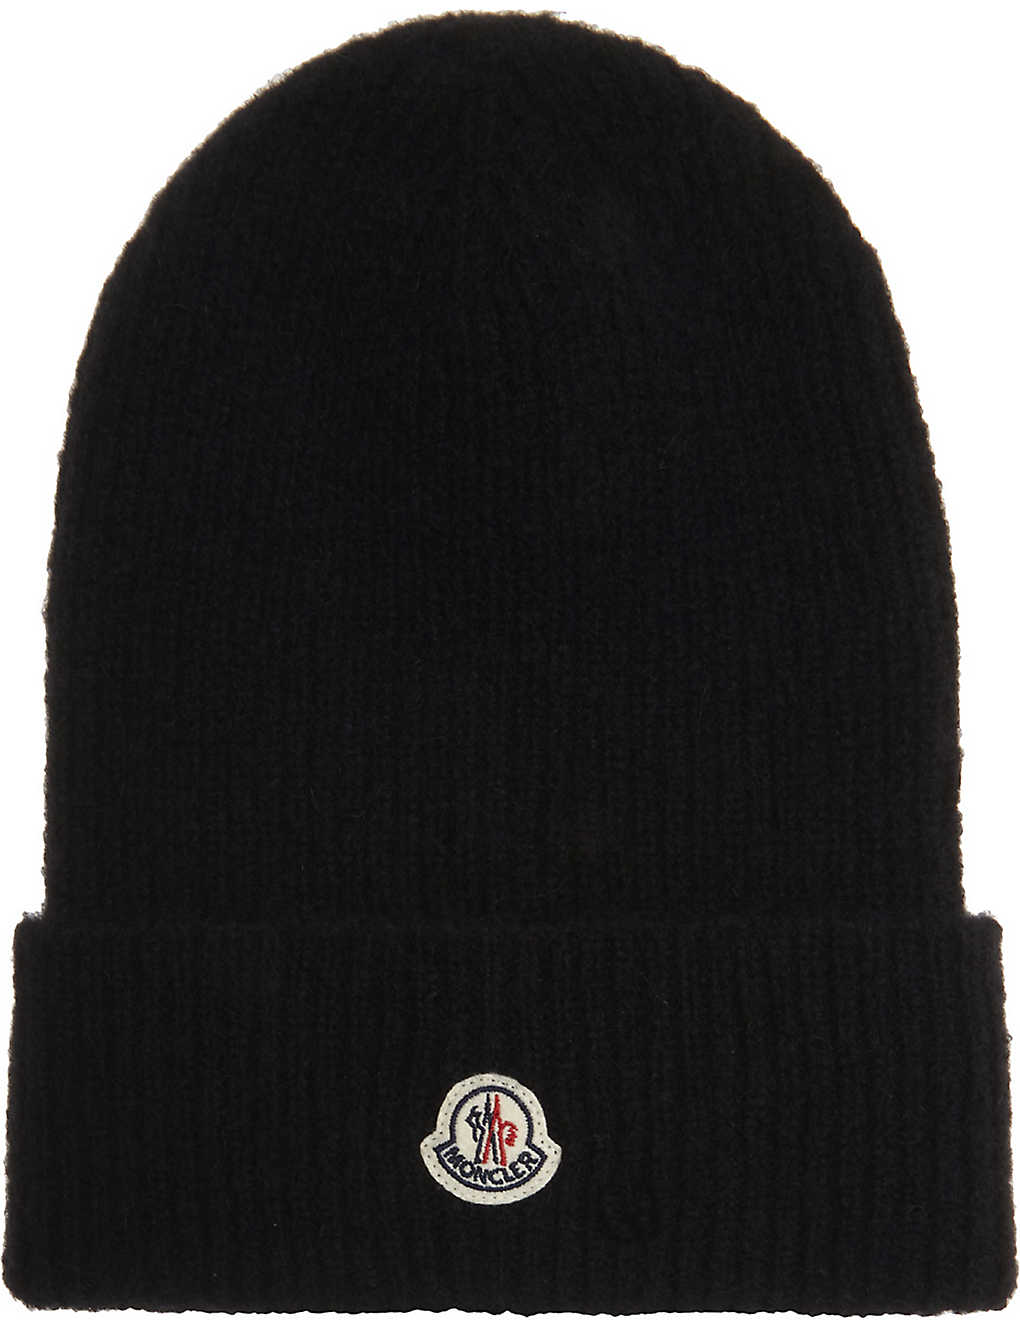 6ce752adc MONCLER - Cable knit wool-alpaca blend hat | Selfridges.com